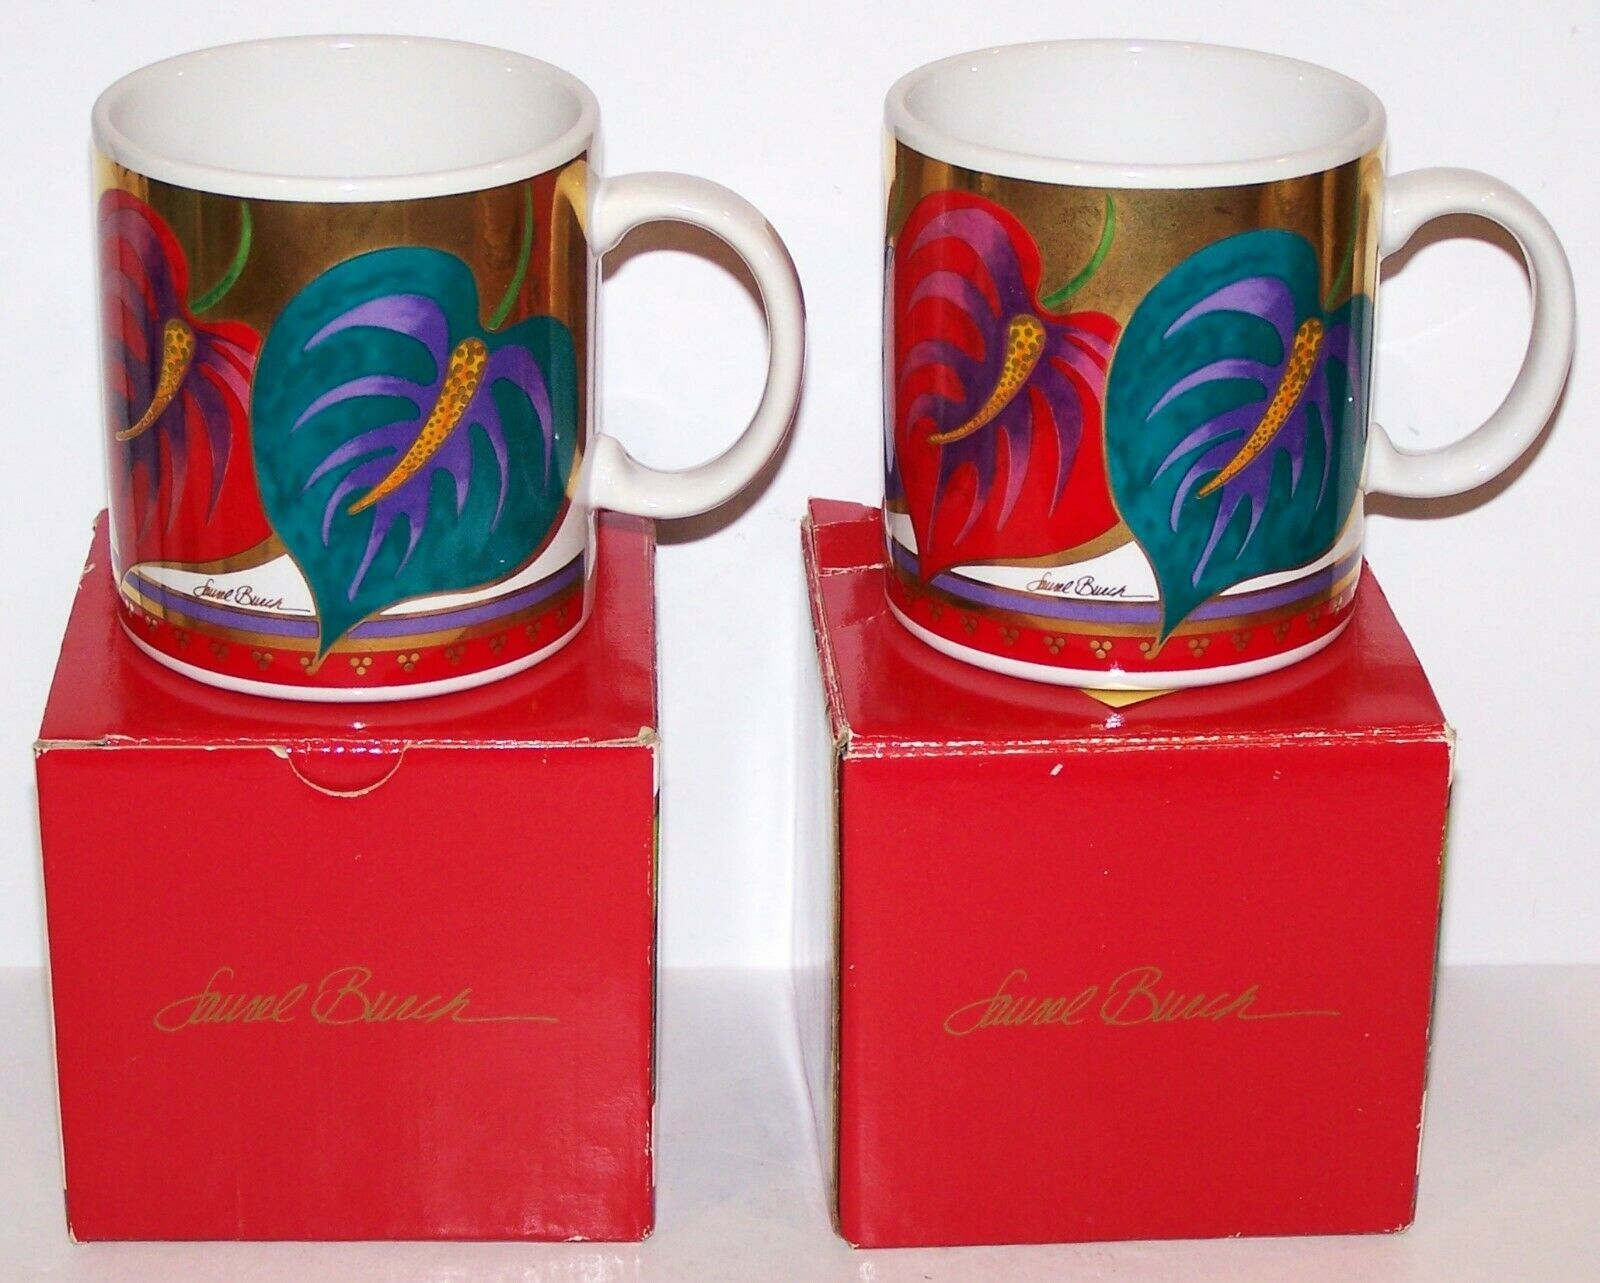 GORGEOUS PAIR OF LAUREL BURCH ANTHURIUM FLORAL COFFEE MUGS IN BOXES - $49.49